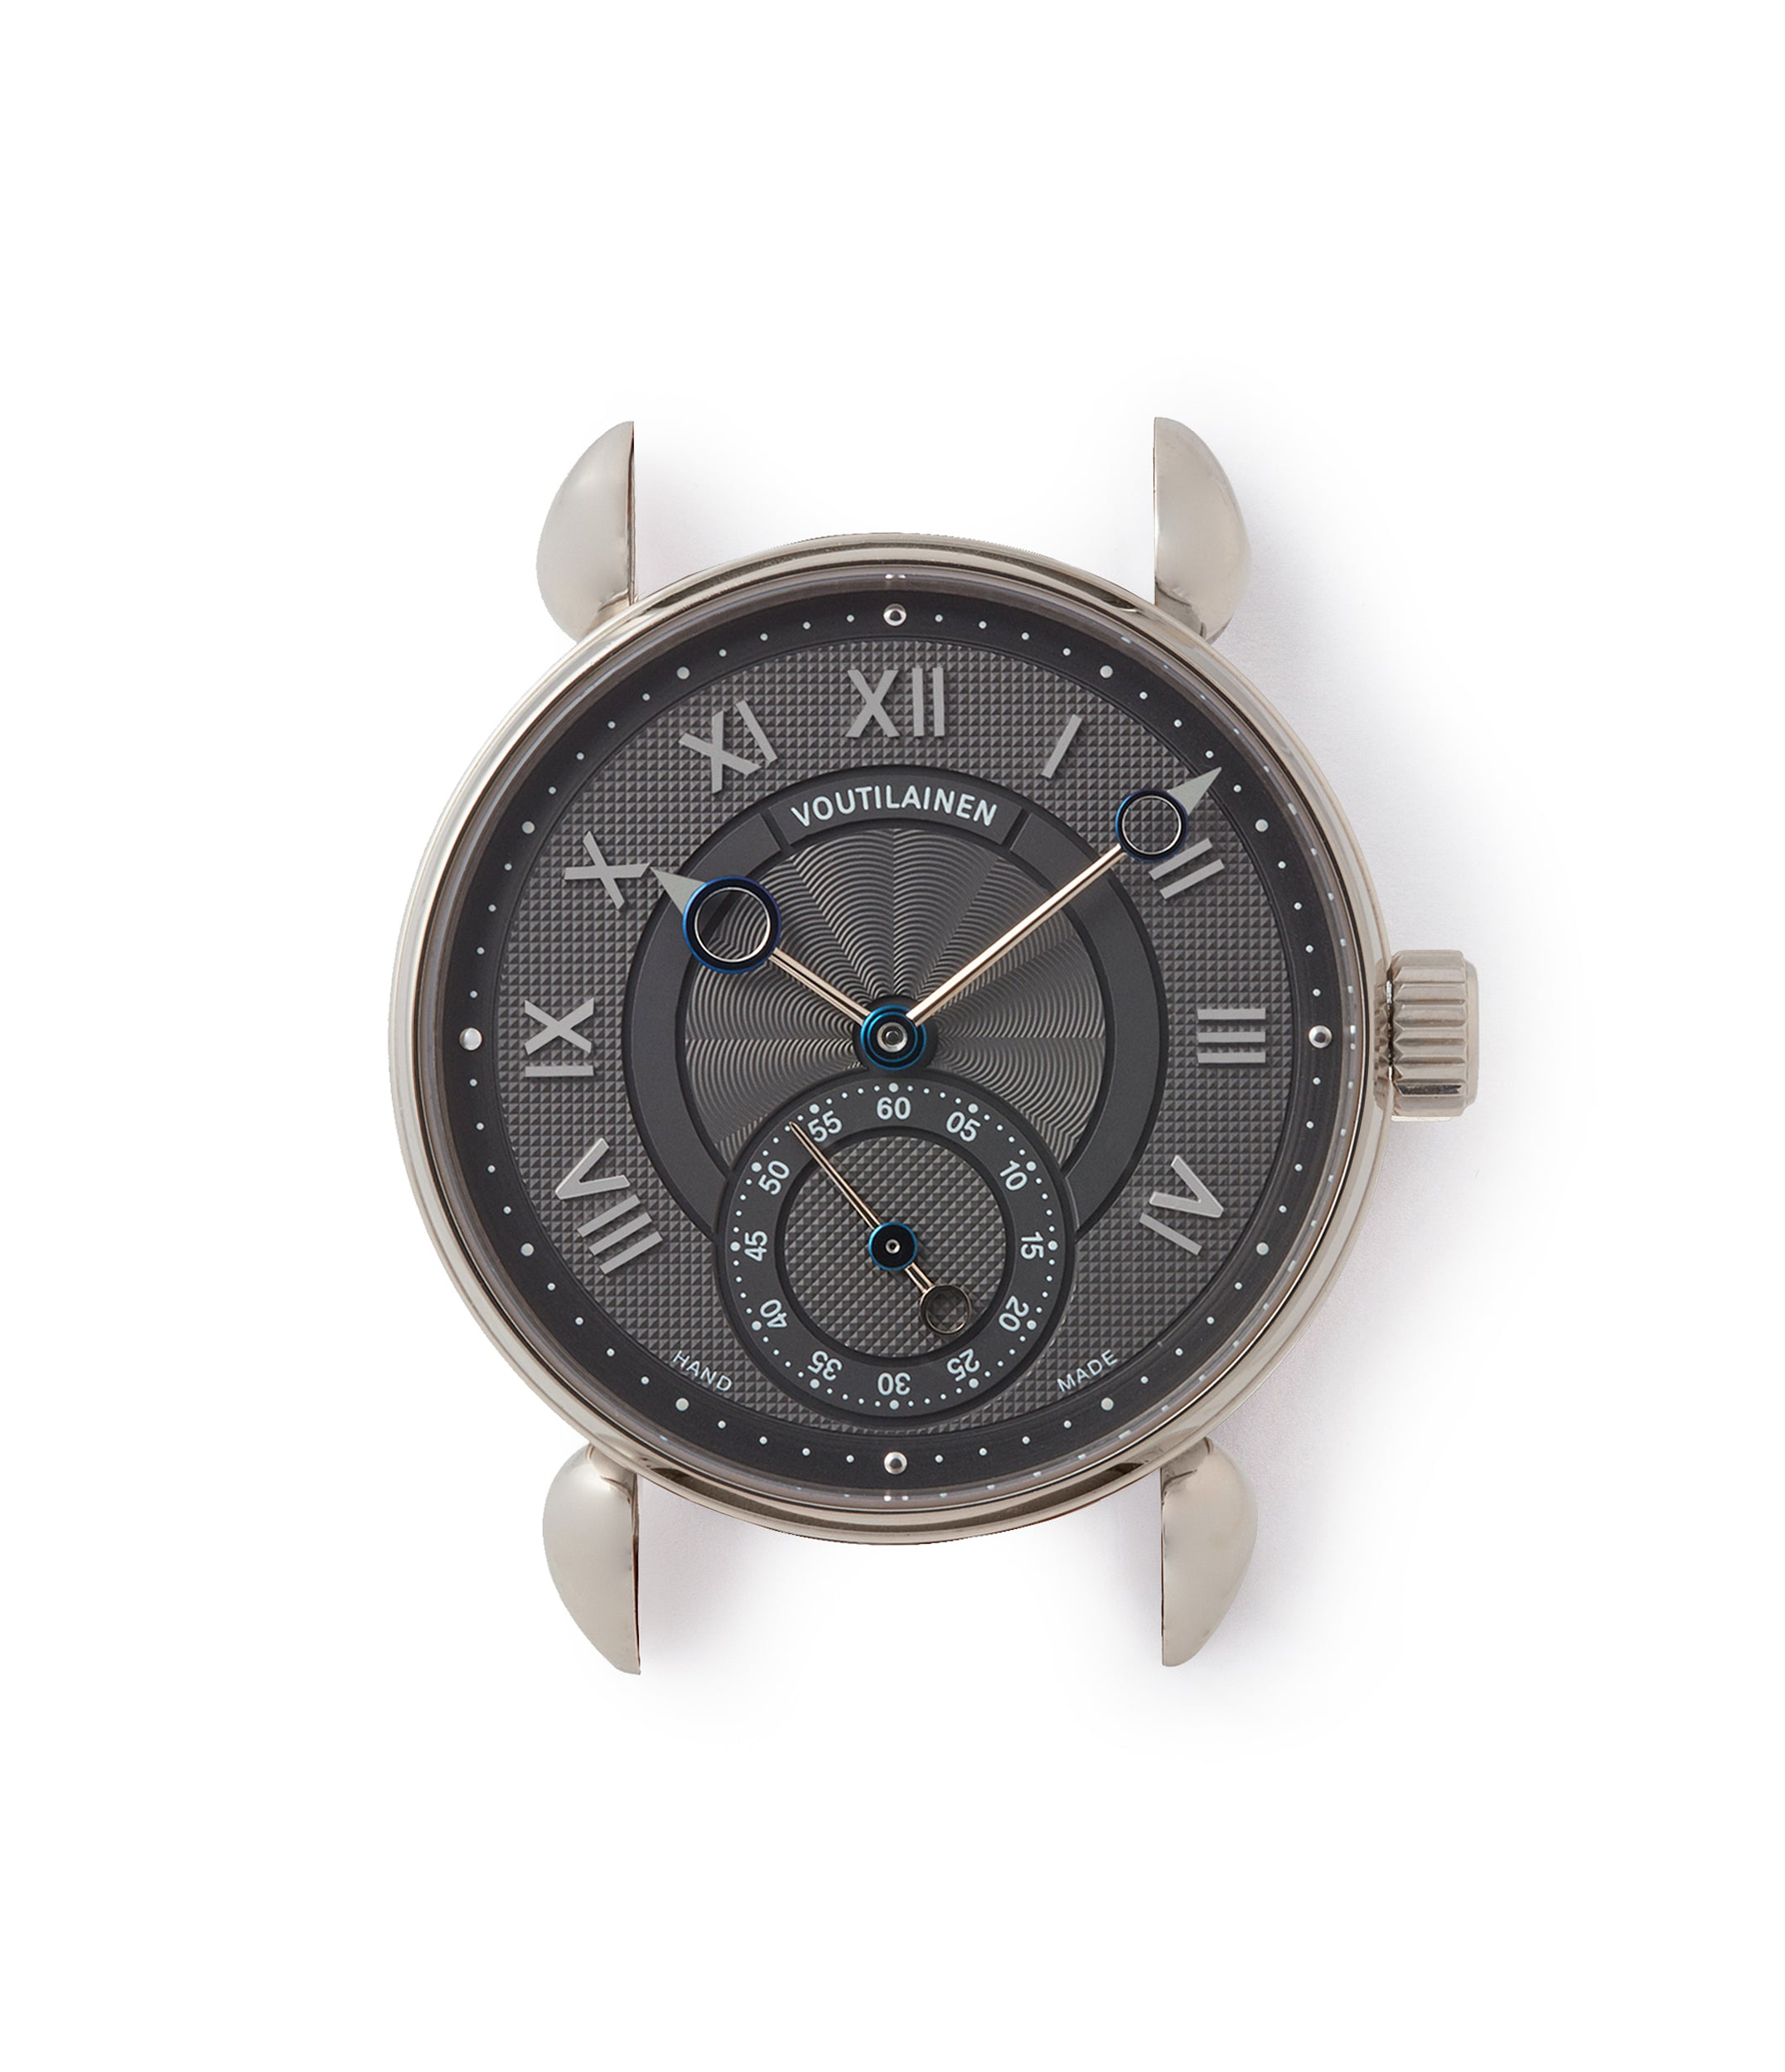 rare grey dial Voutilainen Observatoire dress watch by independent watchmaker for sale online at A Collected Man London approved re-seller of Voutilainen watches